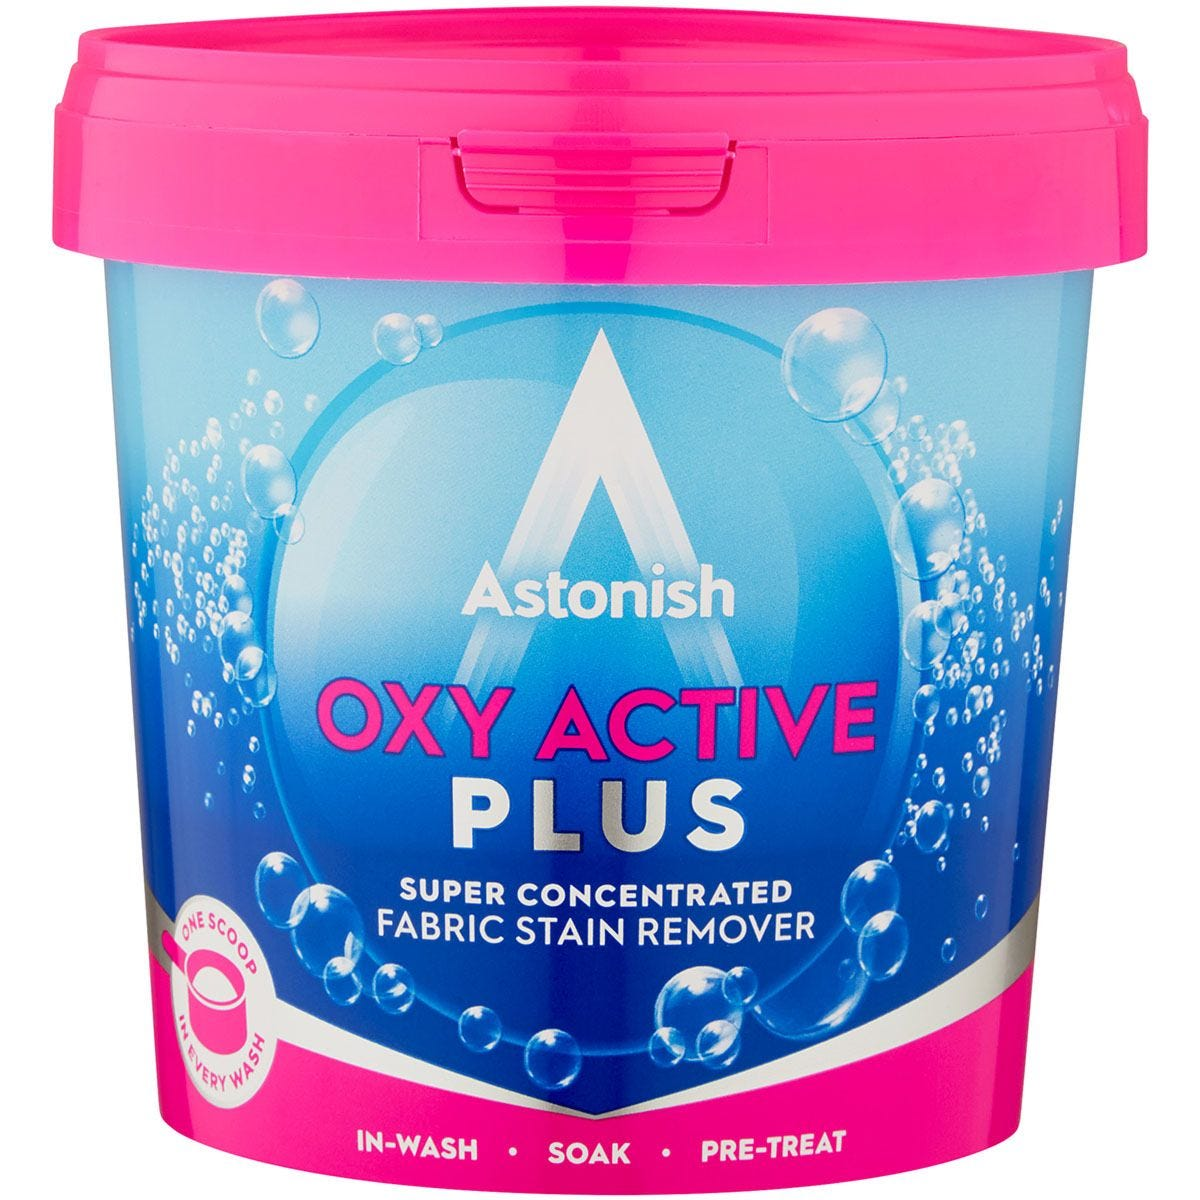 Astonish Oxy Active Plus Fabric Stain Remover - 500g